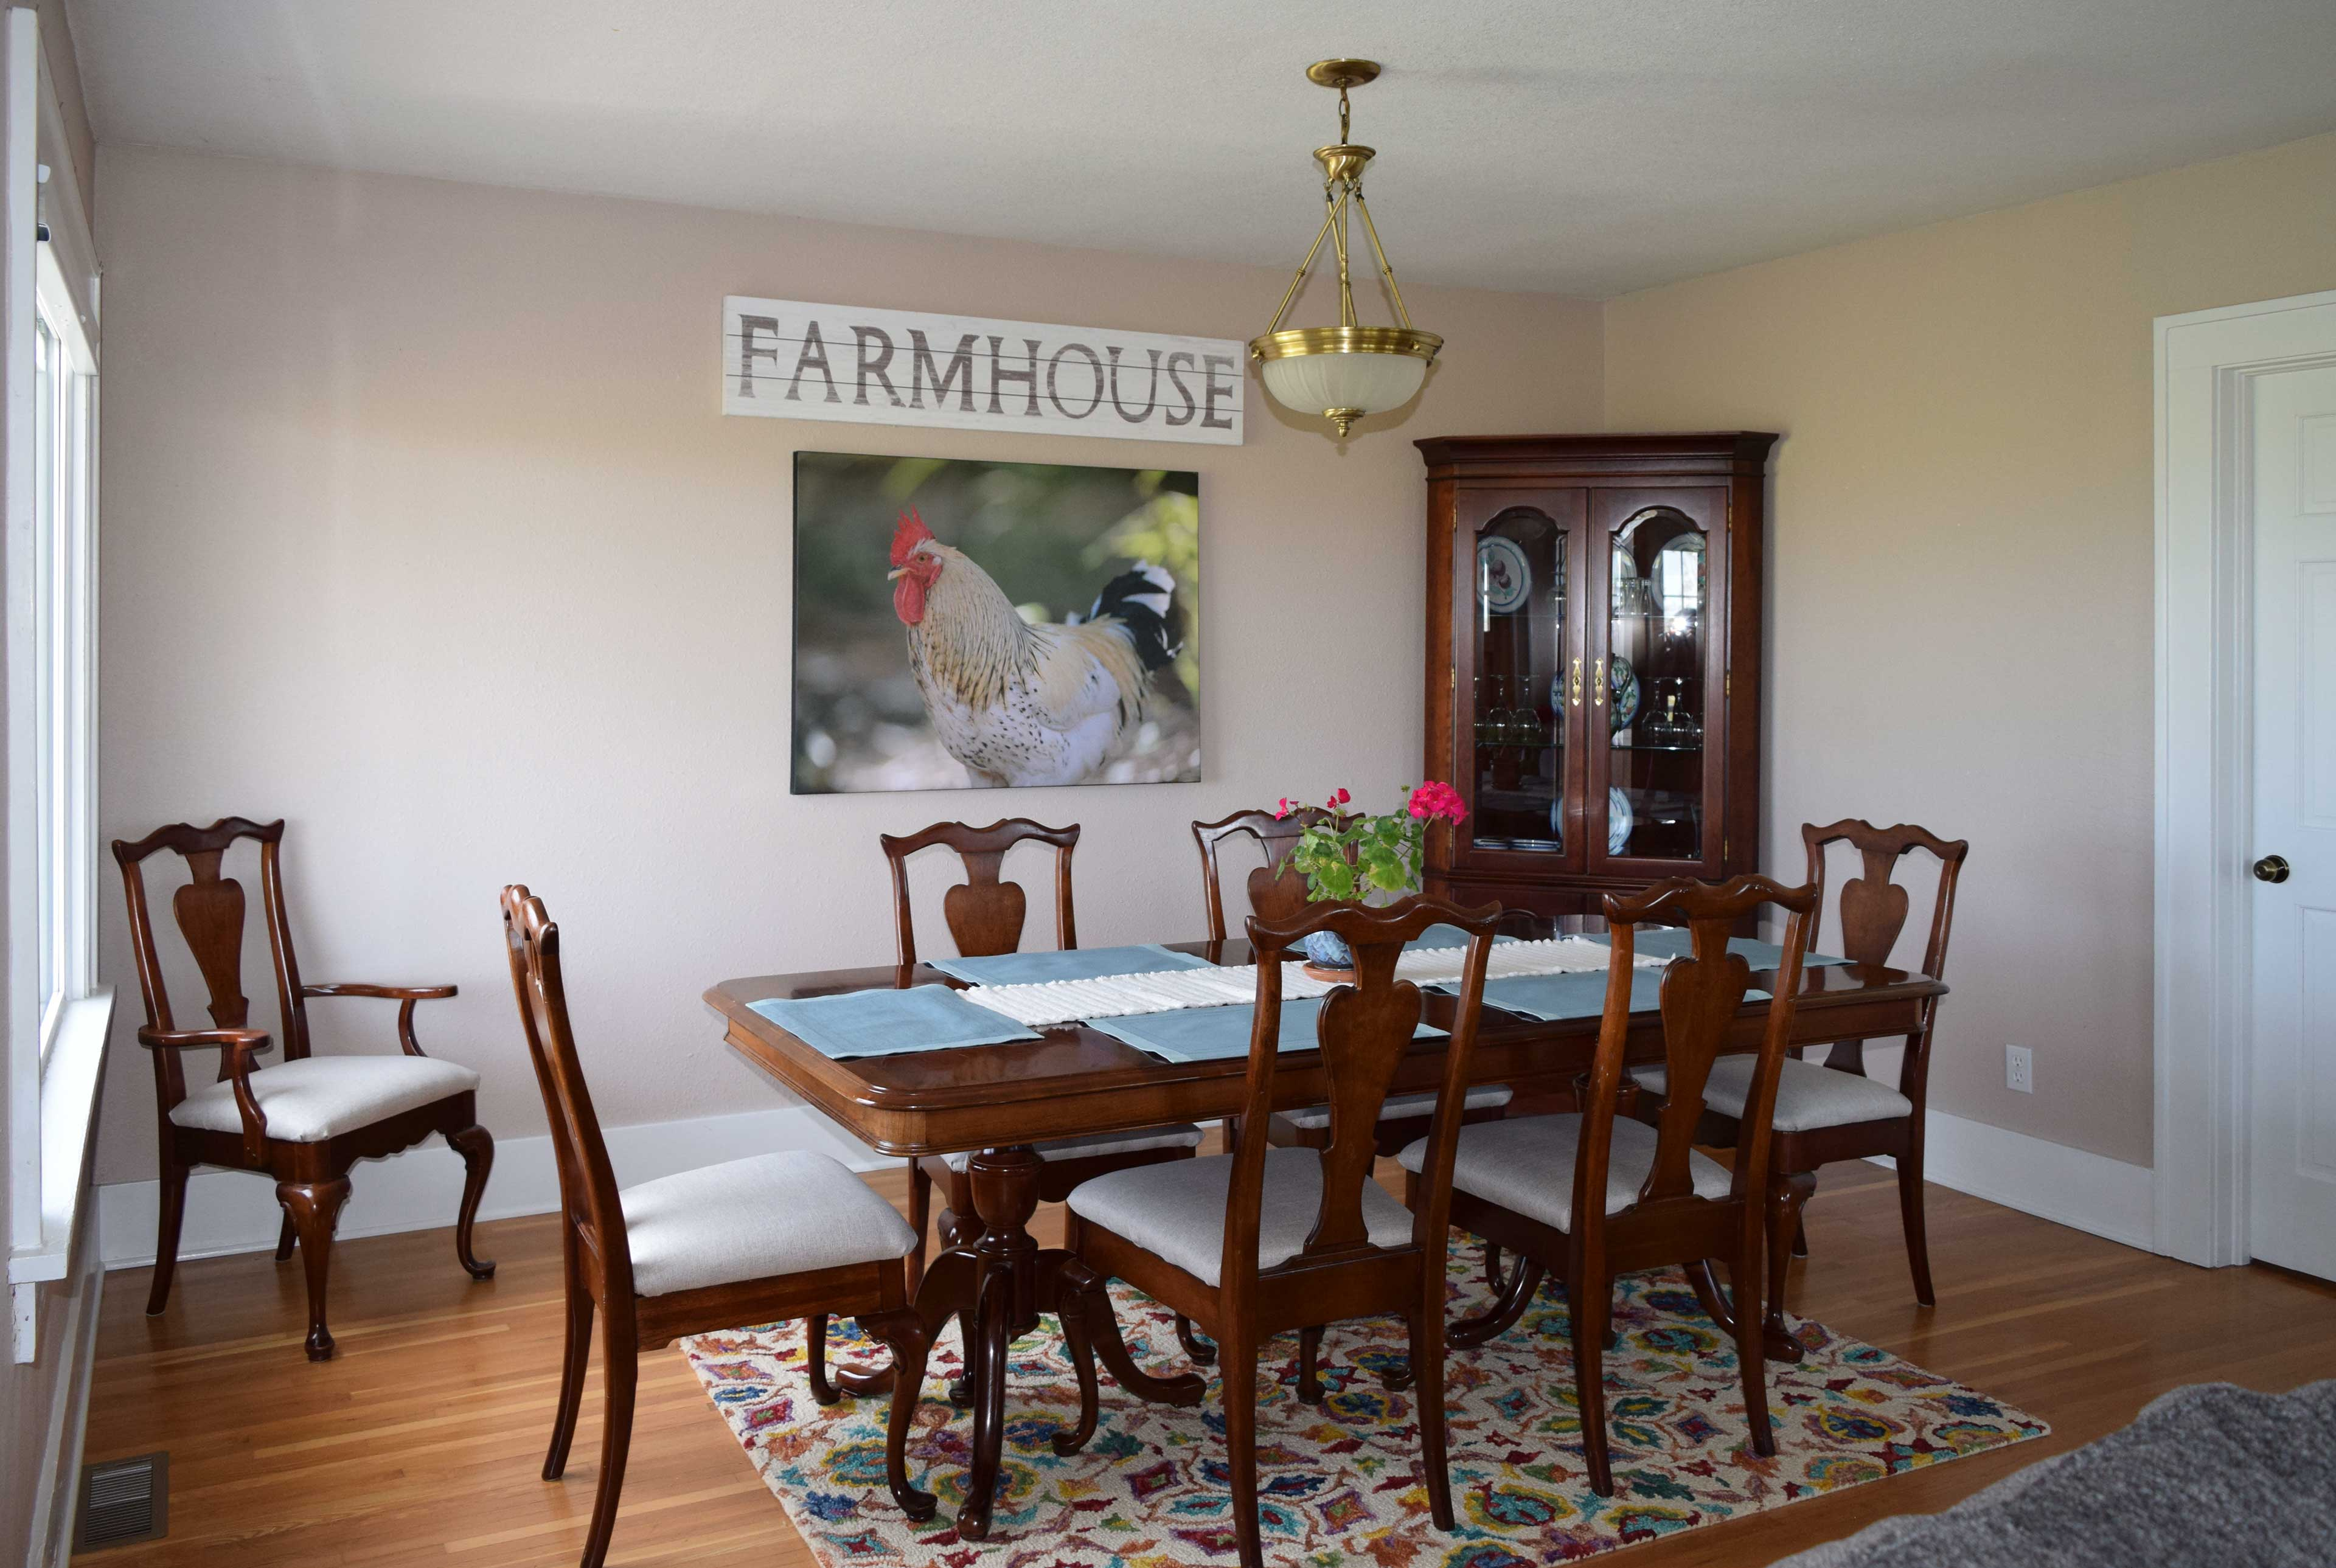 The formal dining area offers seating for 8 guests.